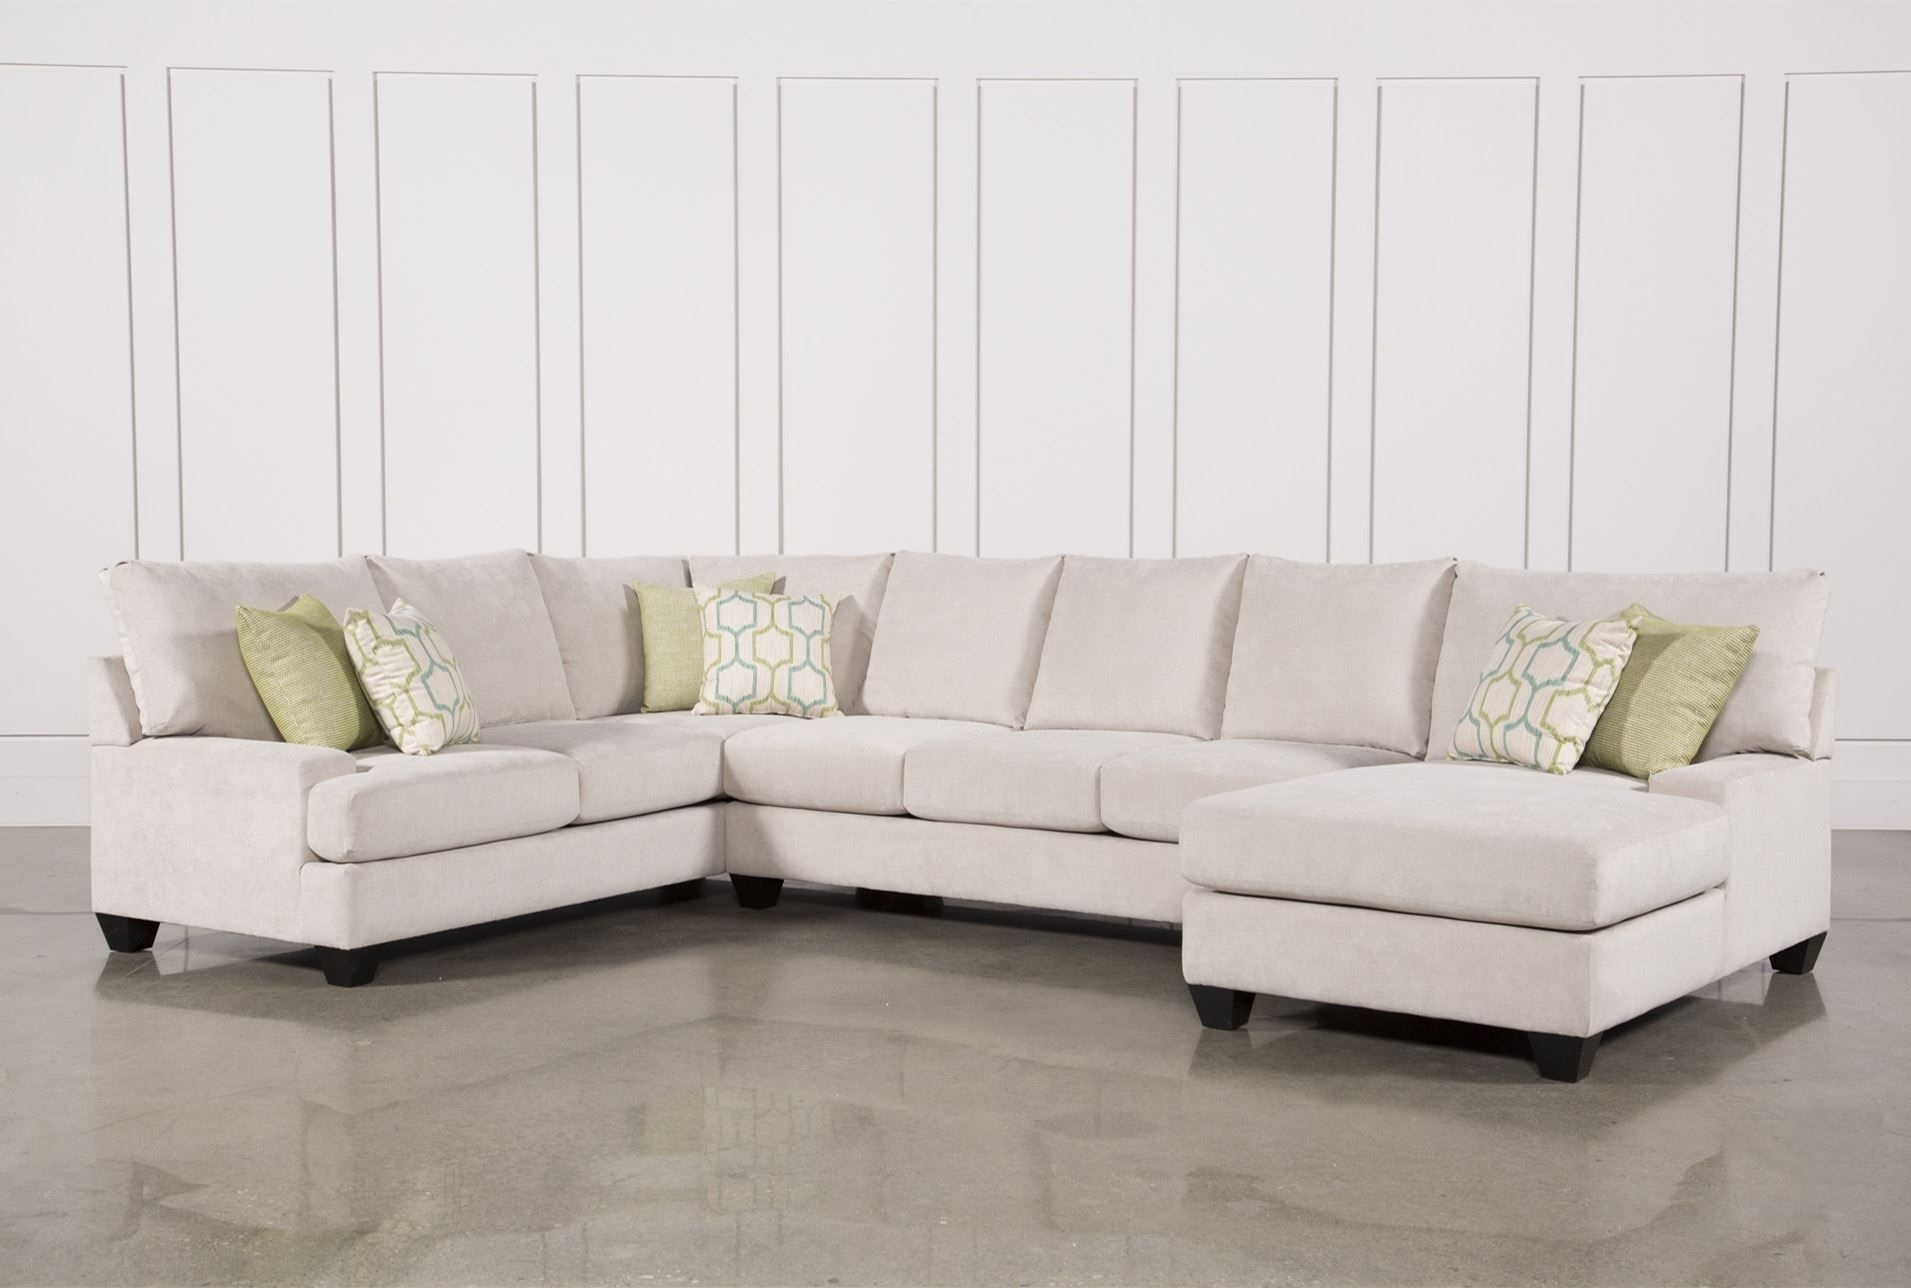 Harper Foam 3 Piece Sectional W/raf Chaise | Family Room | Pinterest In Turdur 2 Piece Sectionals With Raf Loveseat (View 3 of 25)